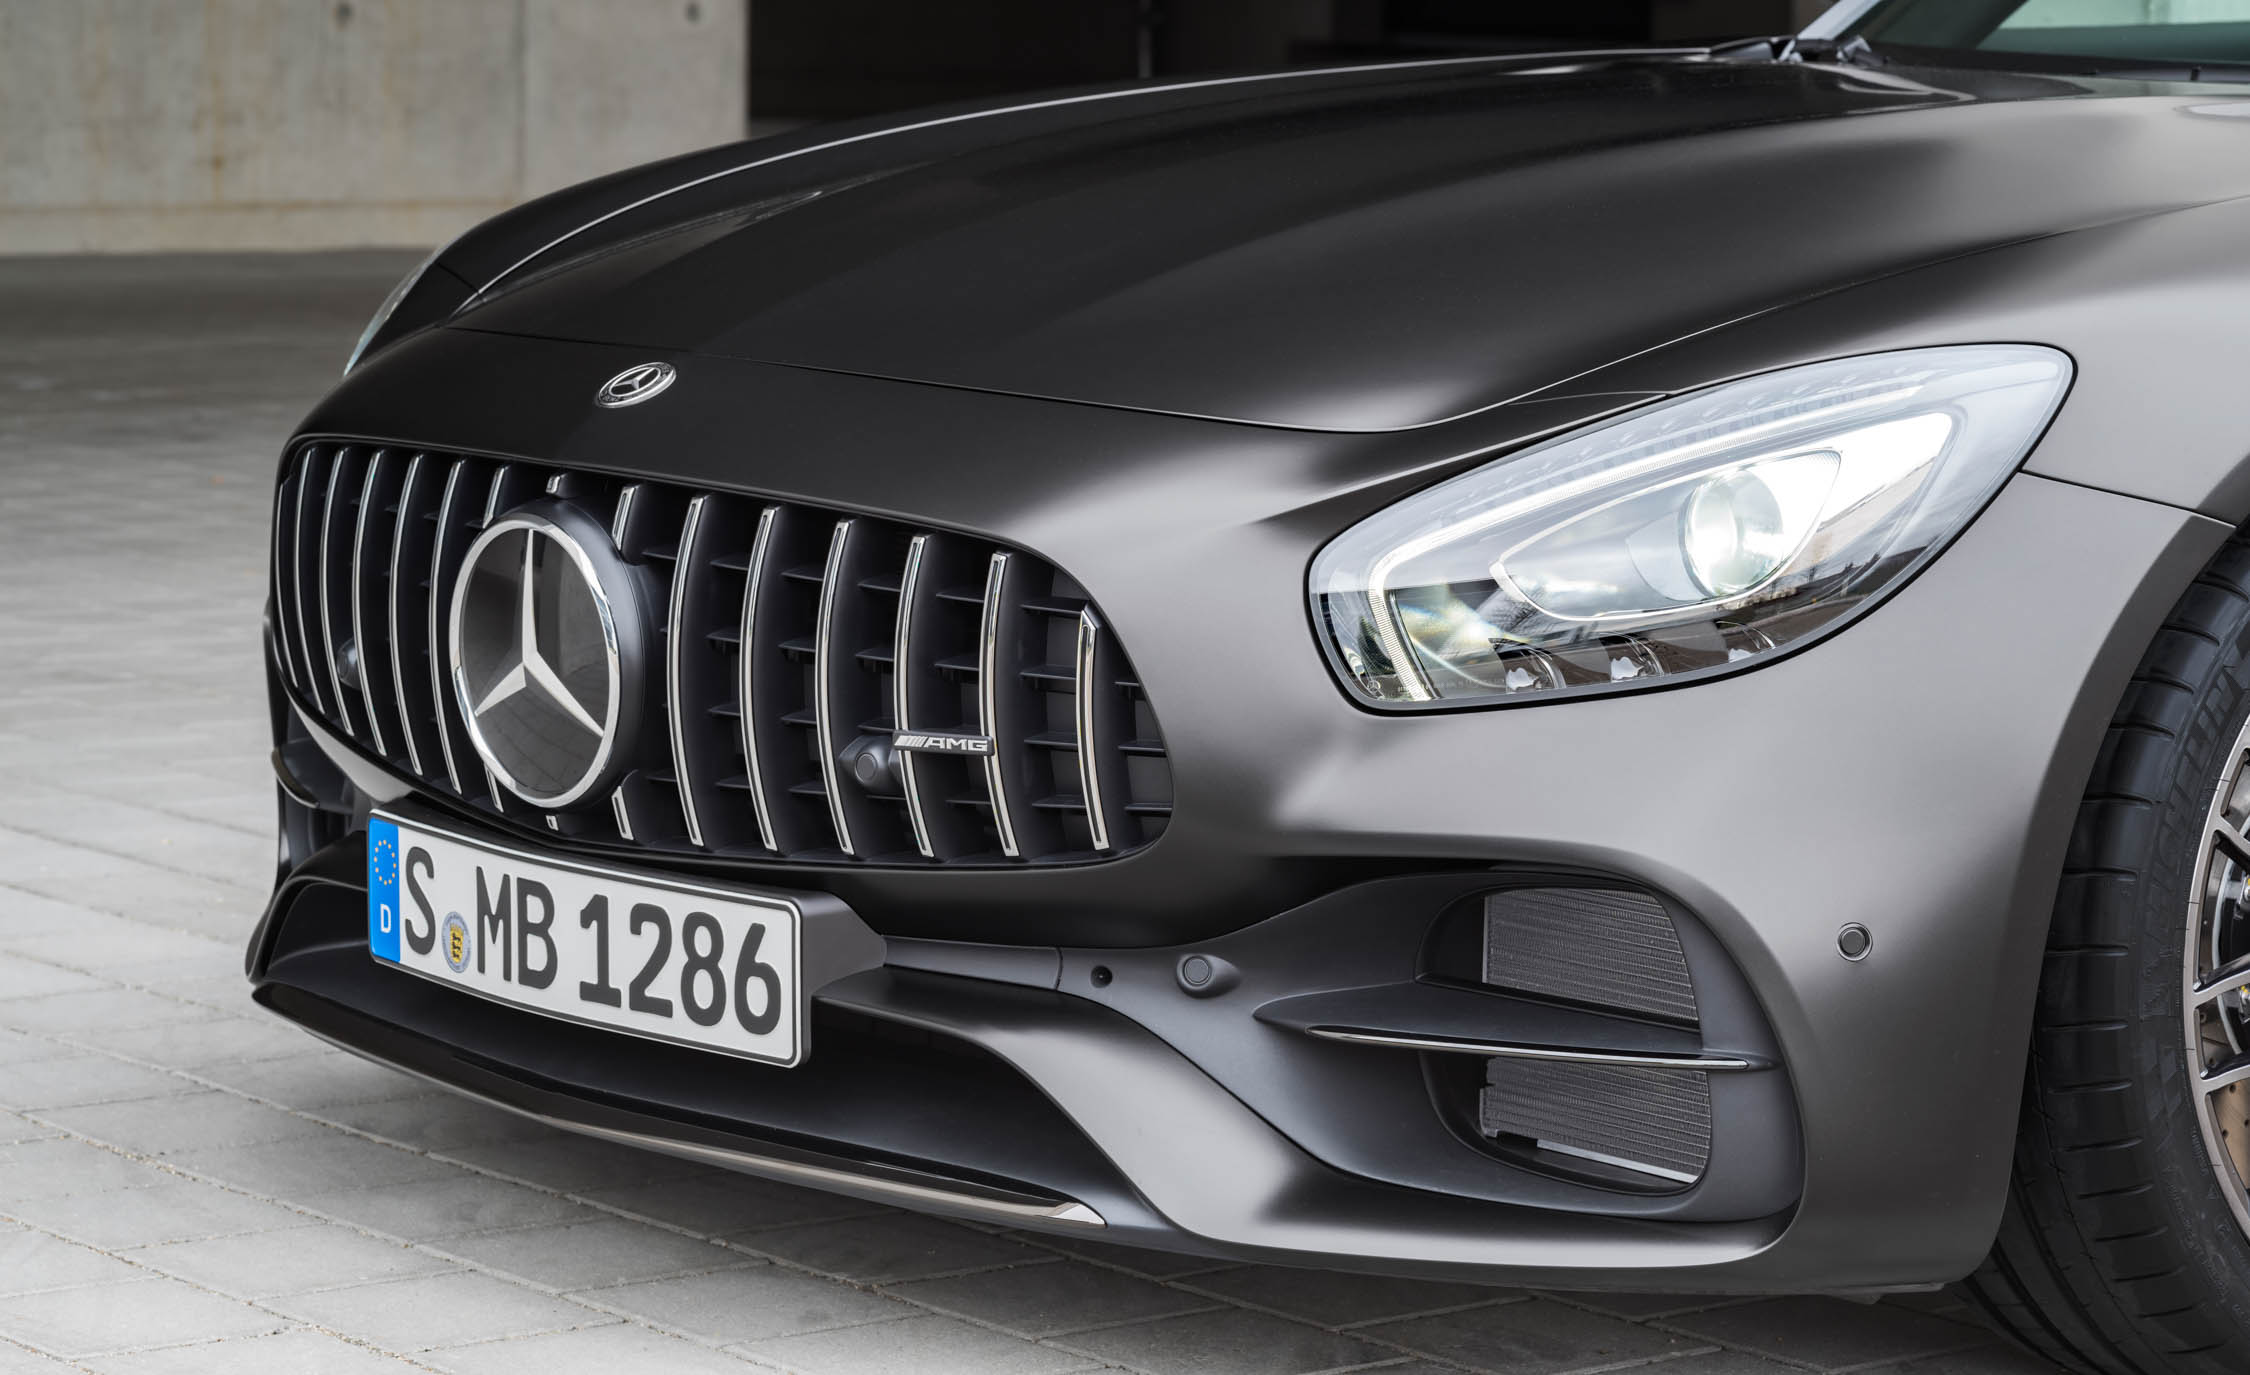 2018 Mercedes Amg Gt C Exterior View Grille And Bumper (View 19 of 23)